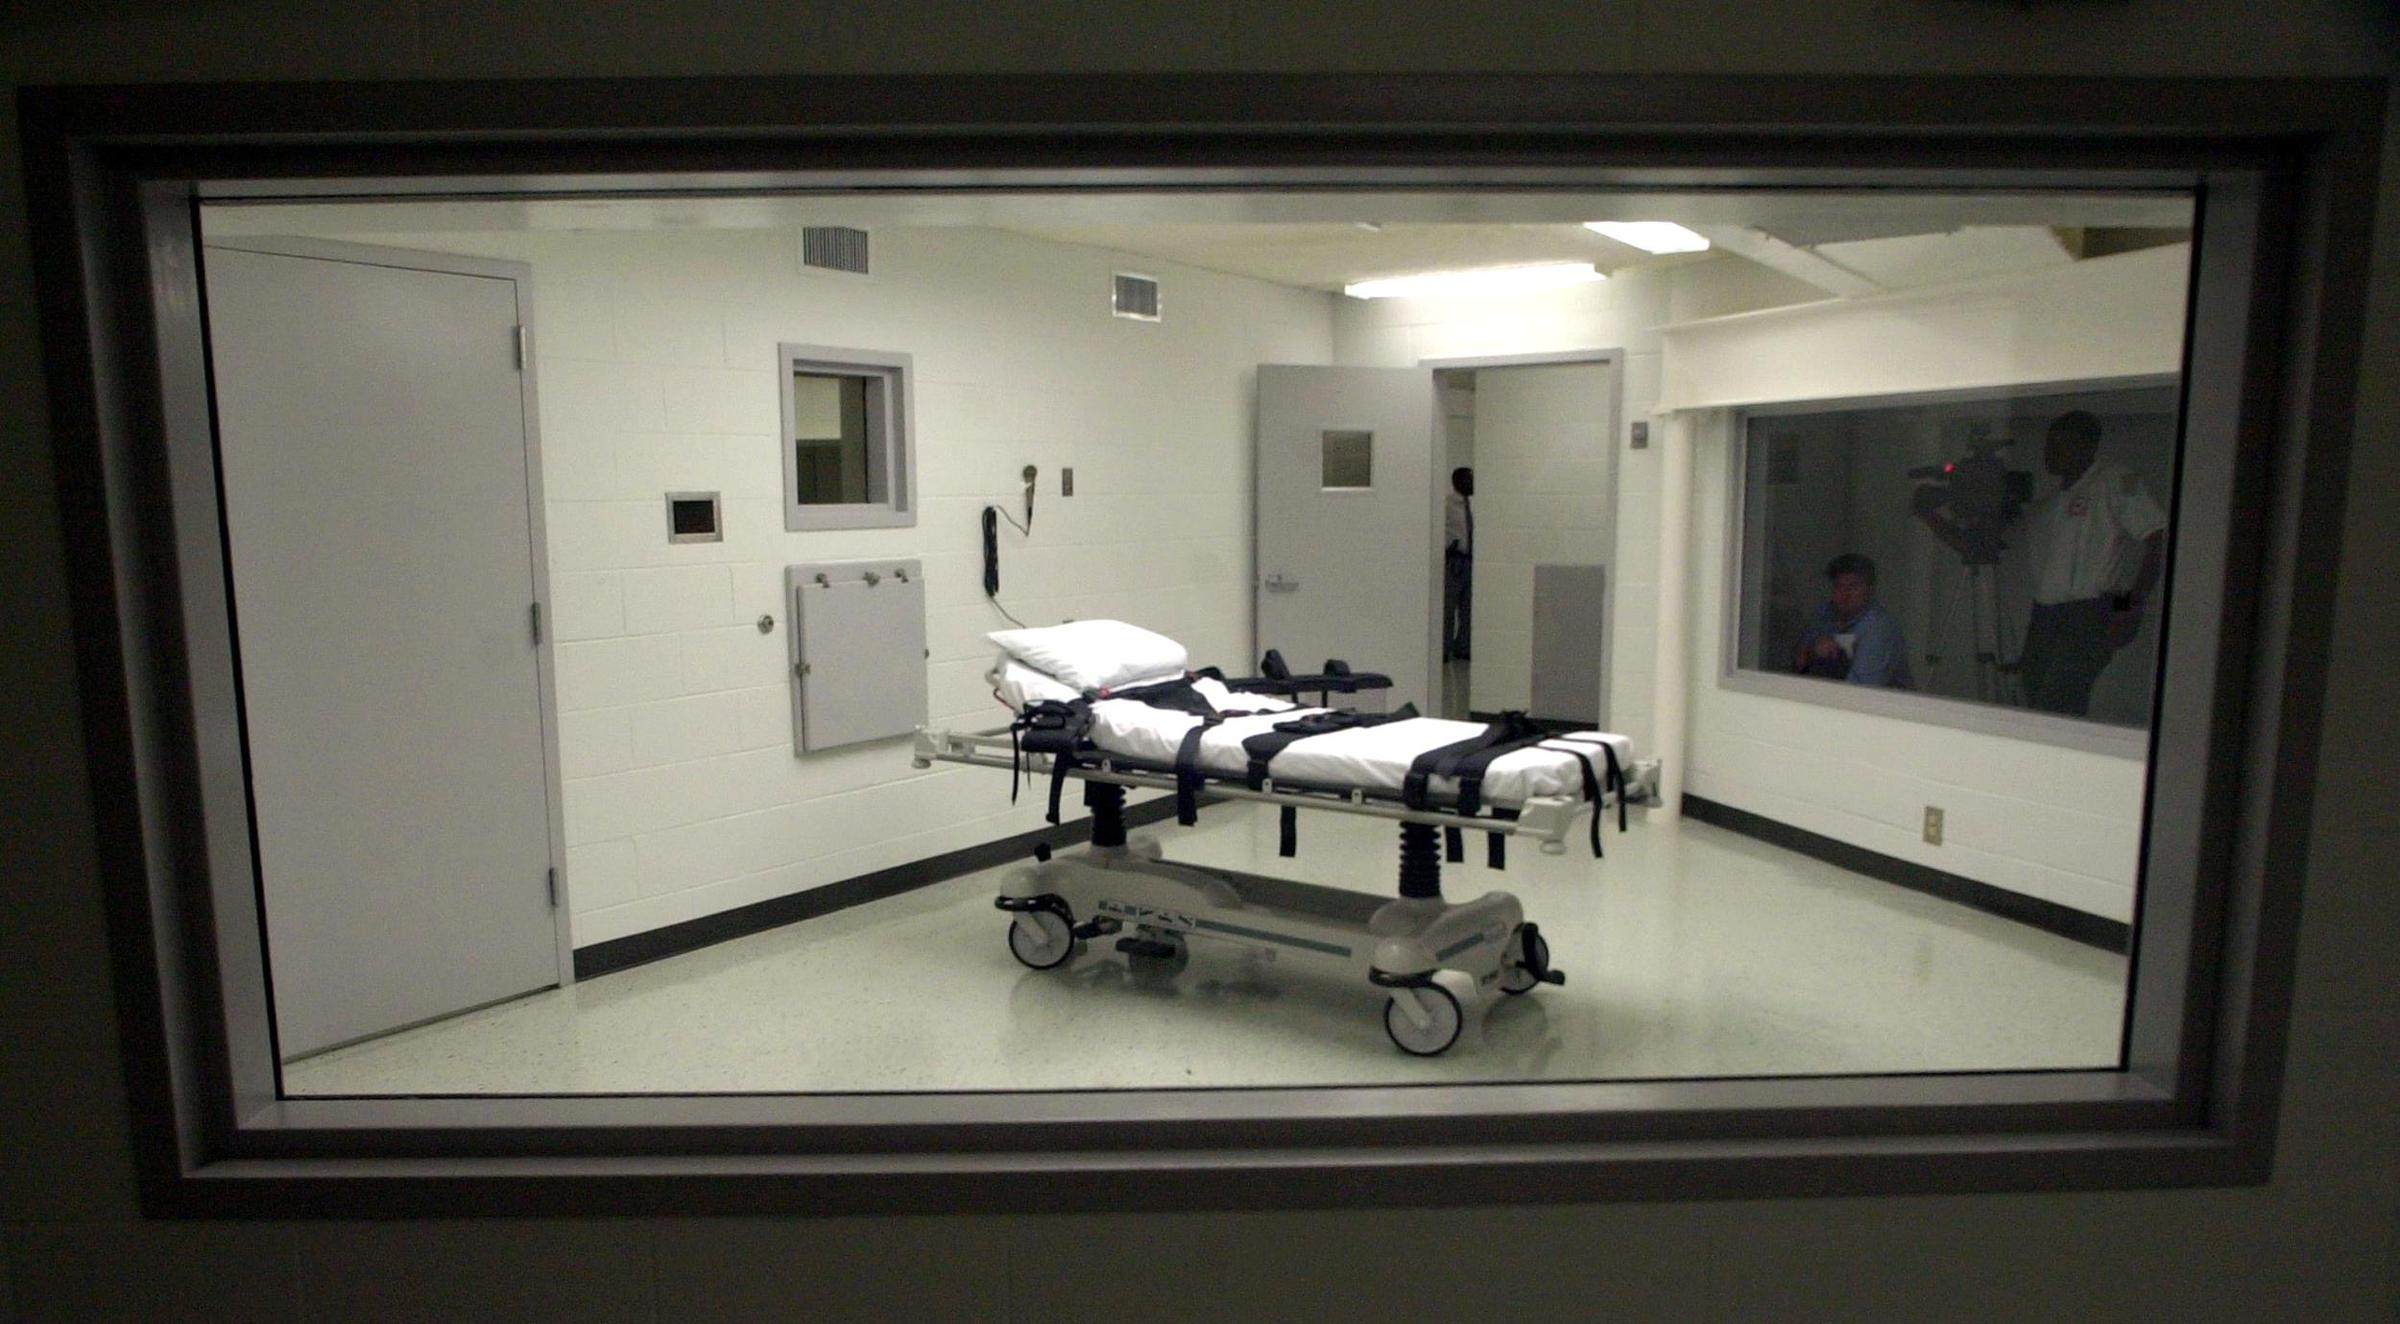 Federal Judge Halts Borden Execution